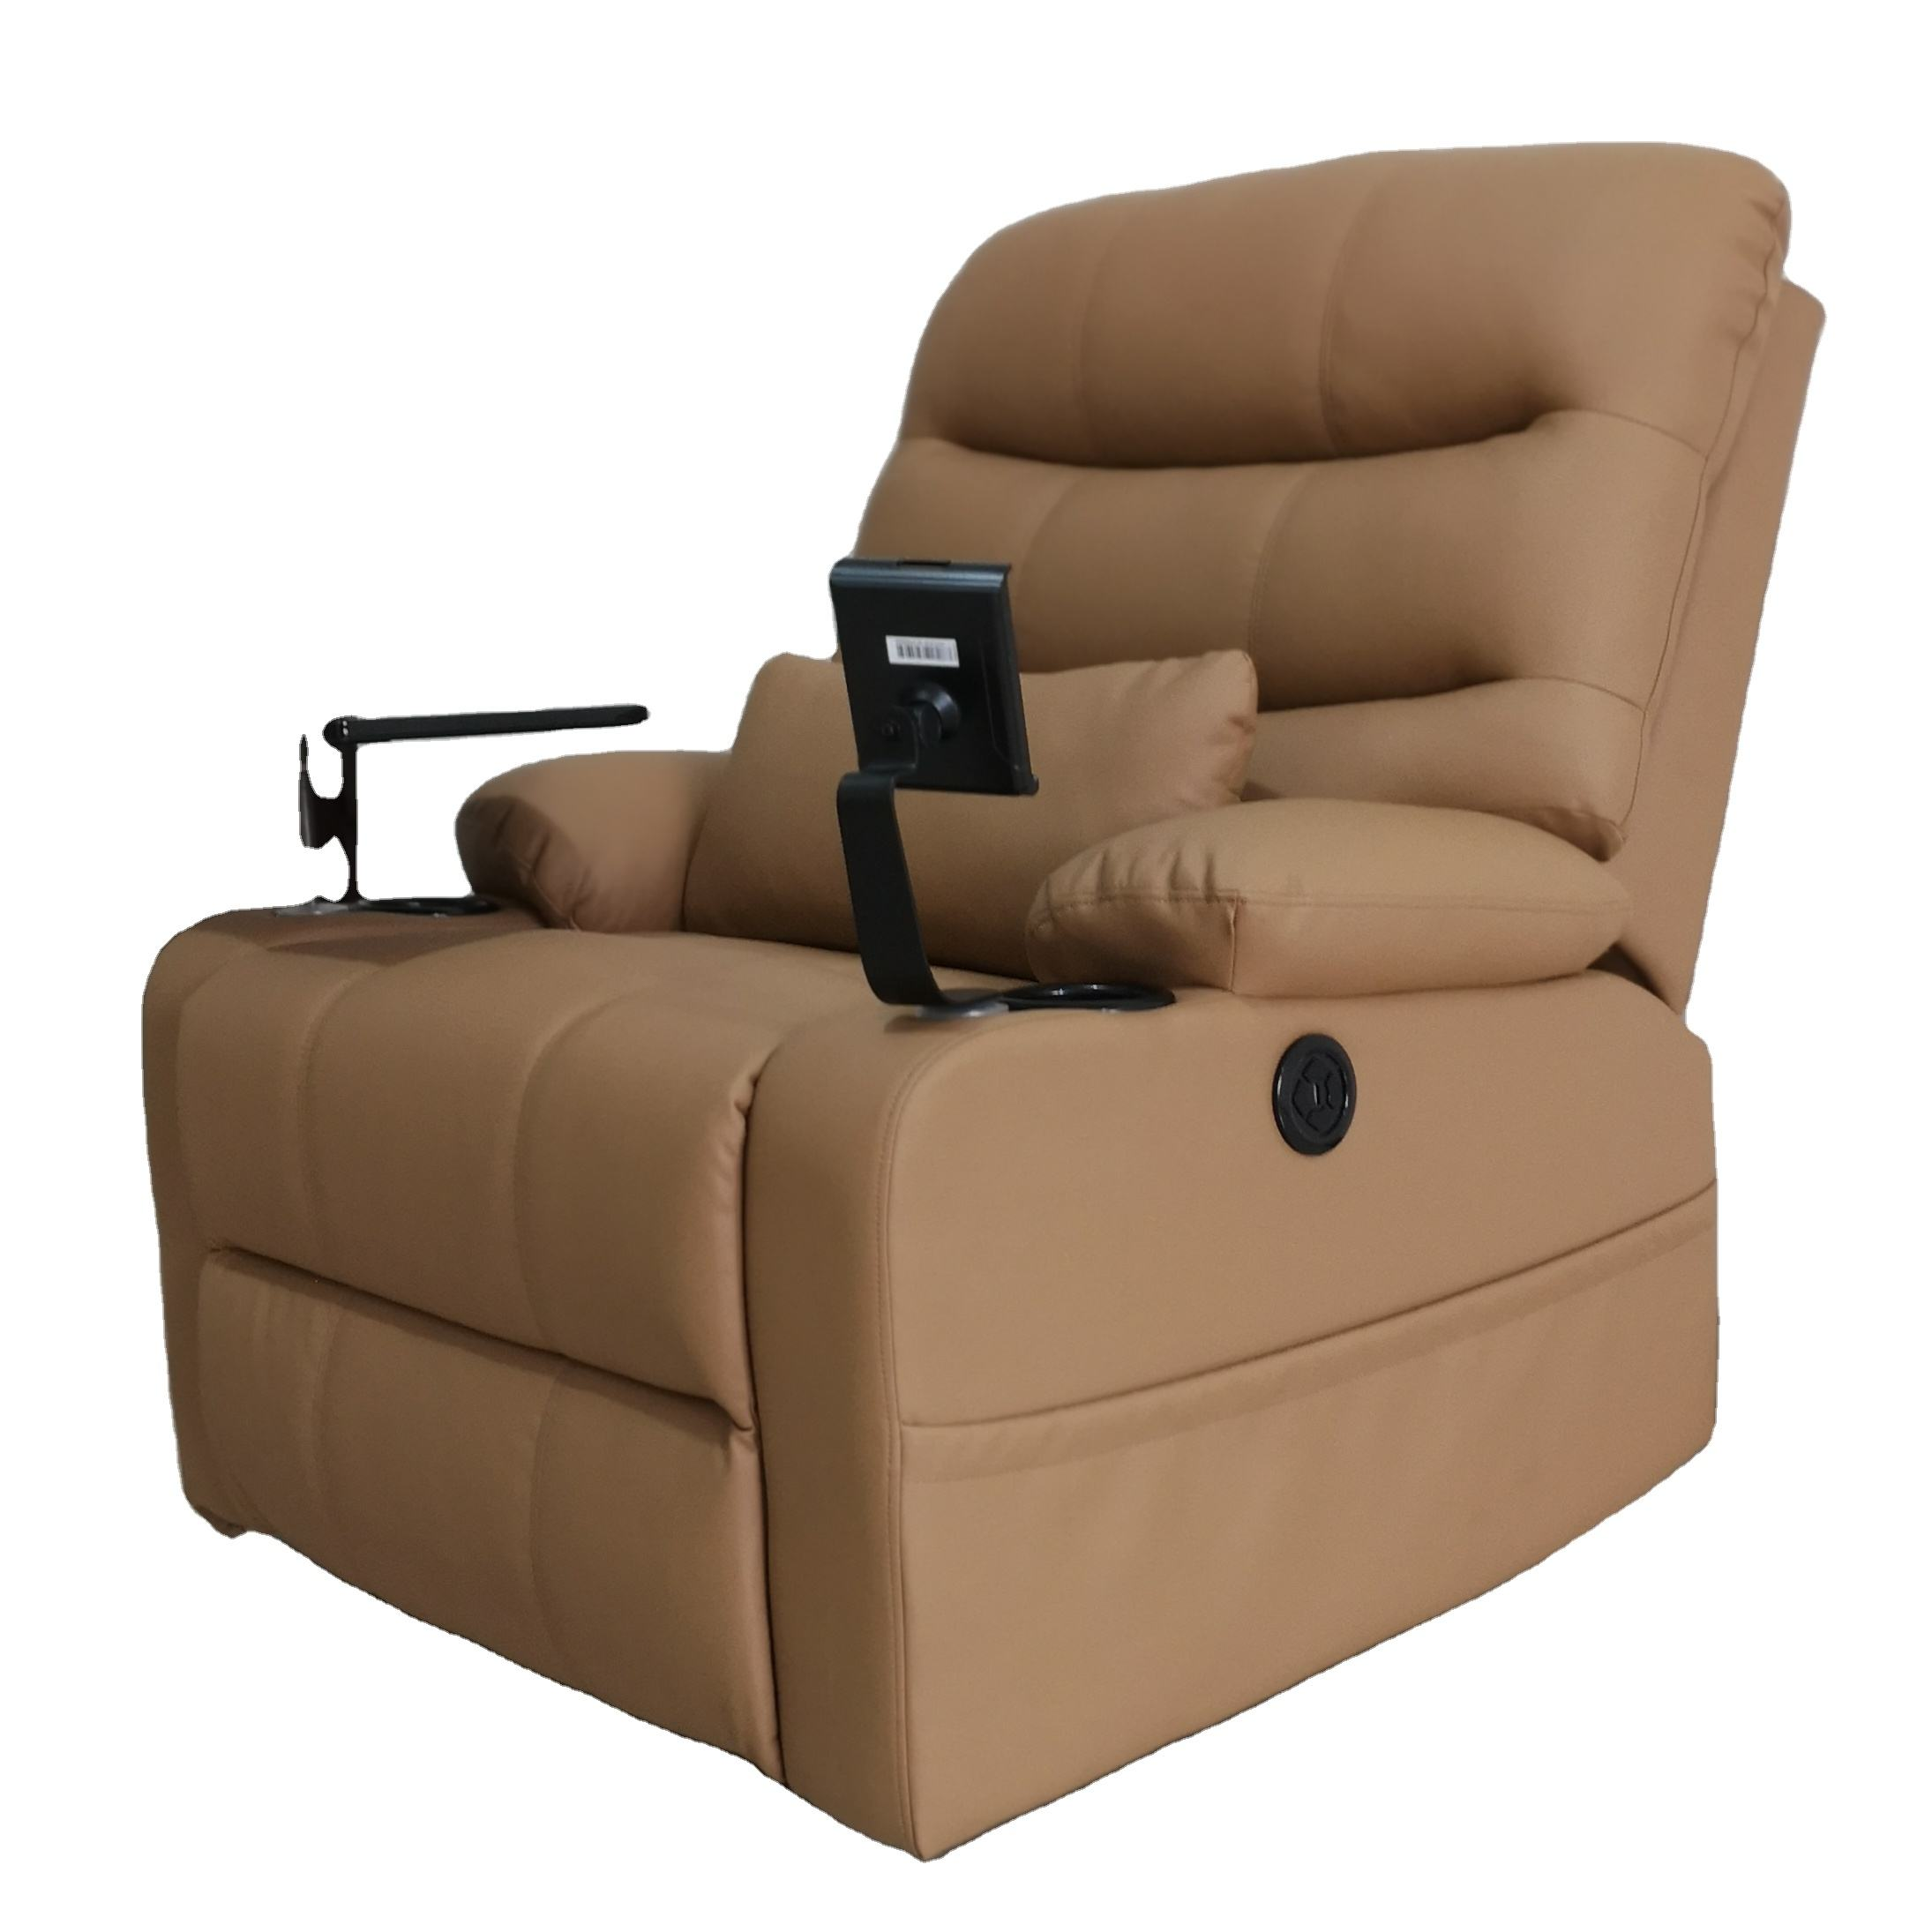 Popular sale adjustable oem/odm rocker for lazy boy relax style single real leather with headrest electric recliner sofa